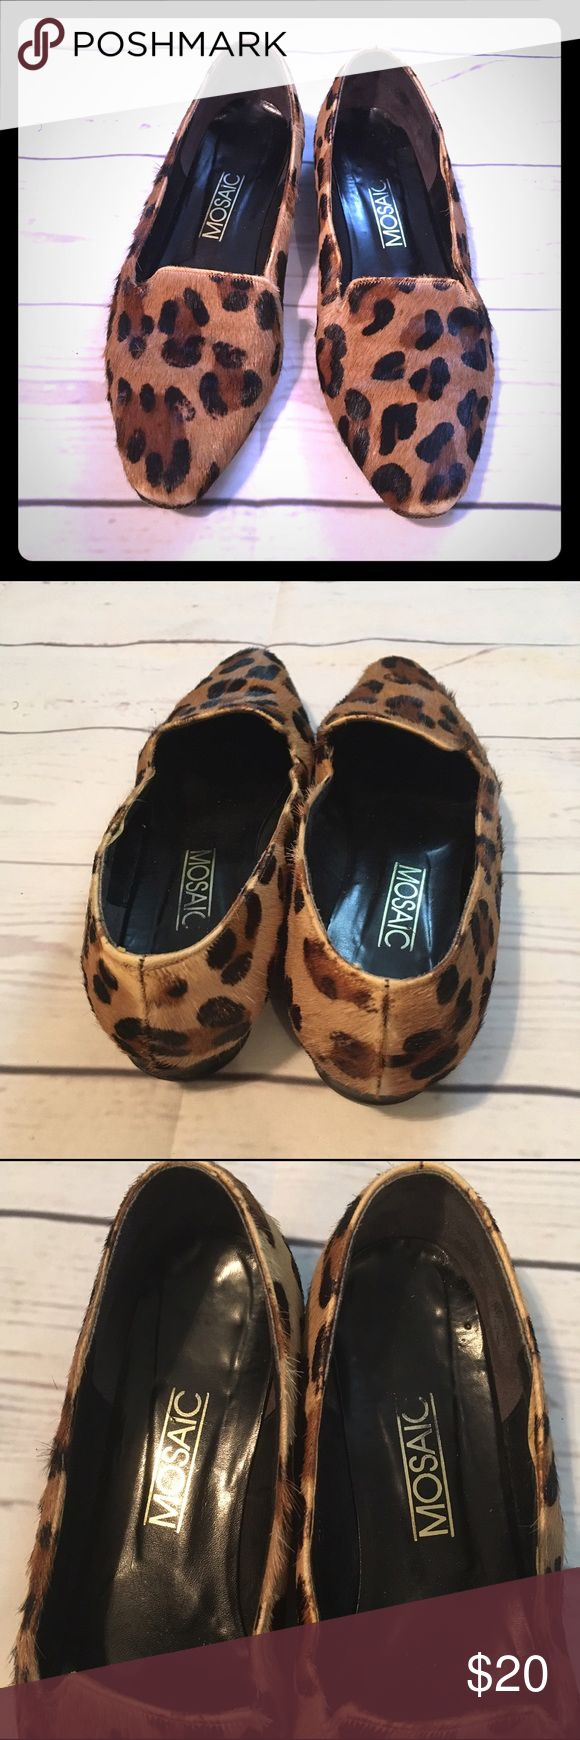 Mosaic Pony Hair Leopard Print Flats Super cute and in good pre owned condition! Size 9. Great fall staple! mosaic Shoes Flats & Loafers